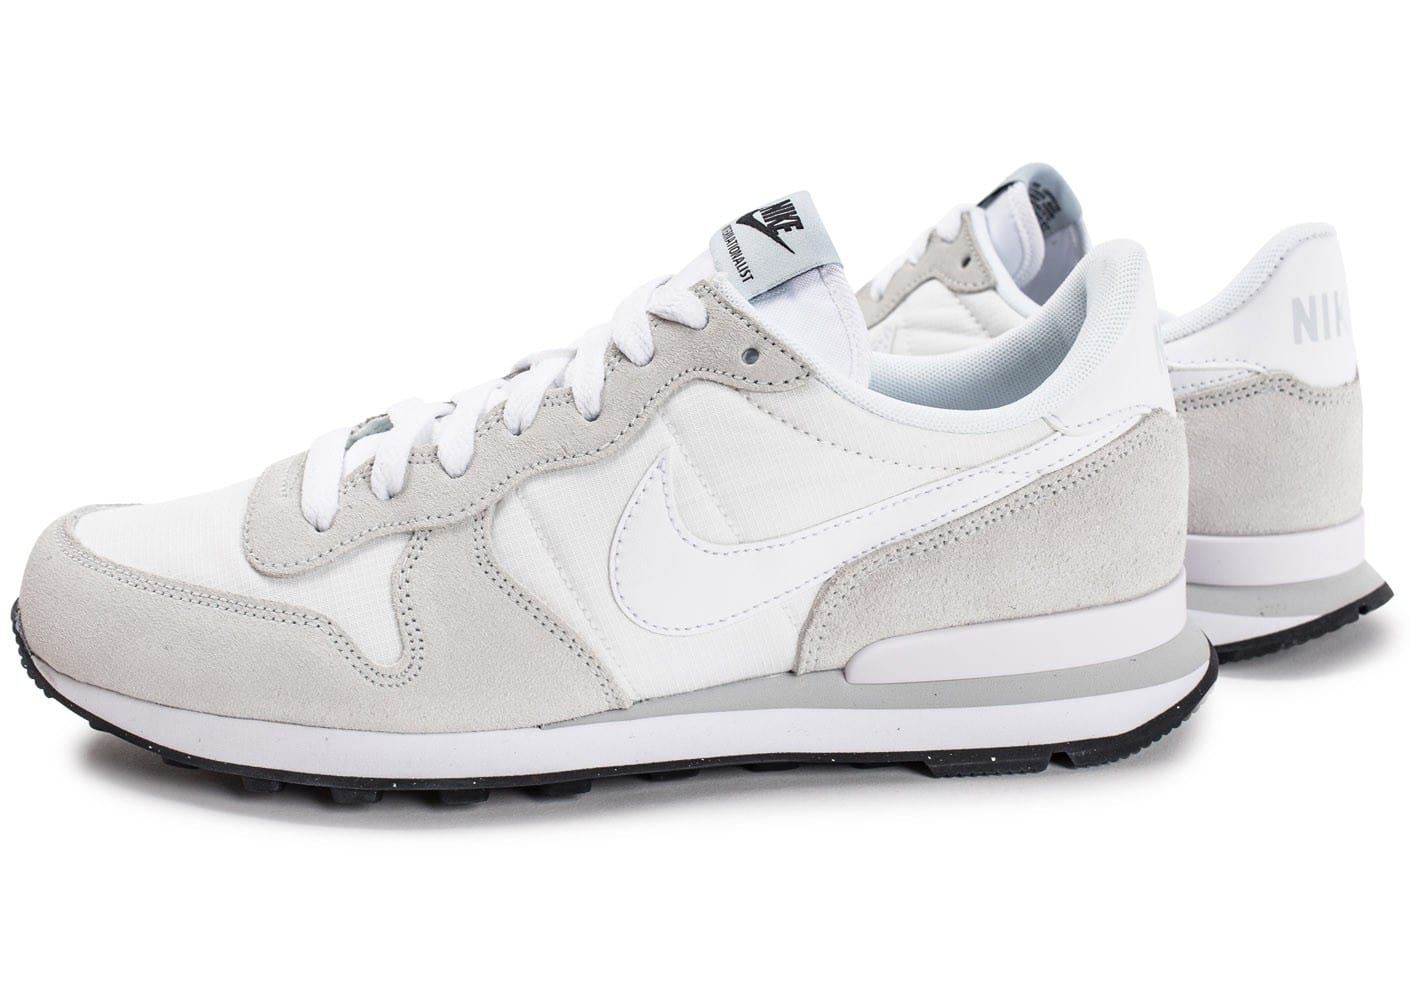 Nike Internationalist blanche Chaussures Baskets homme